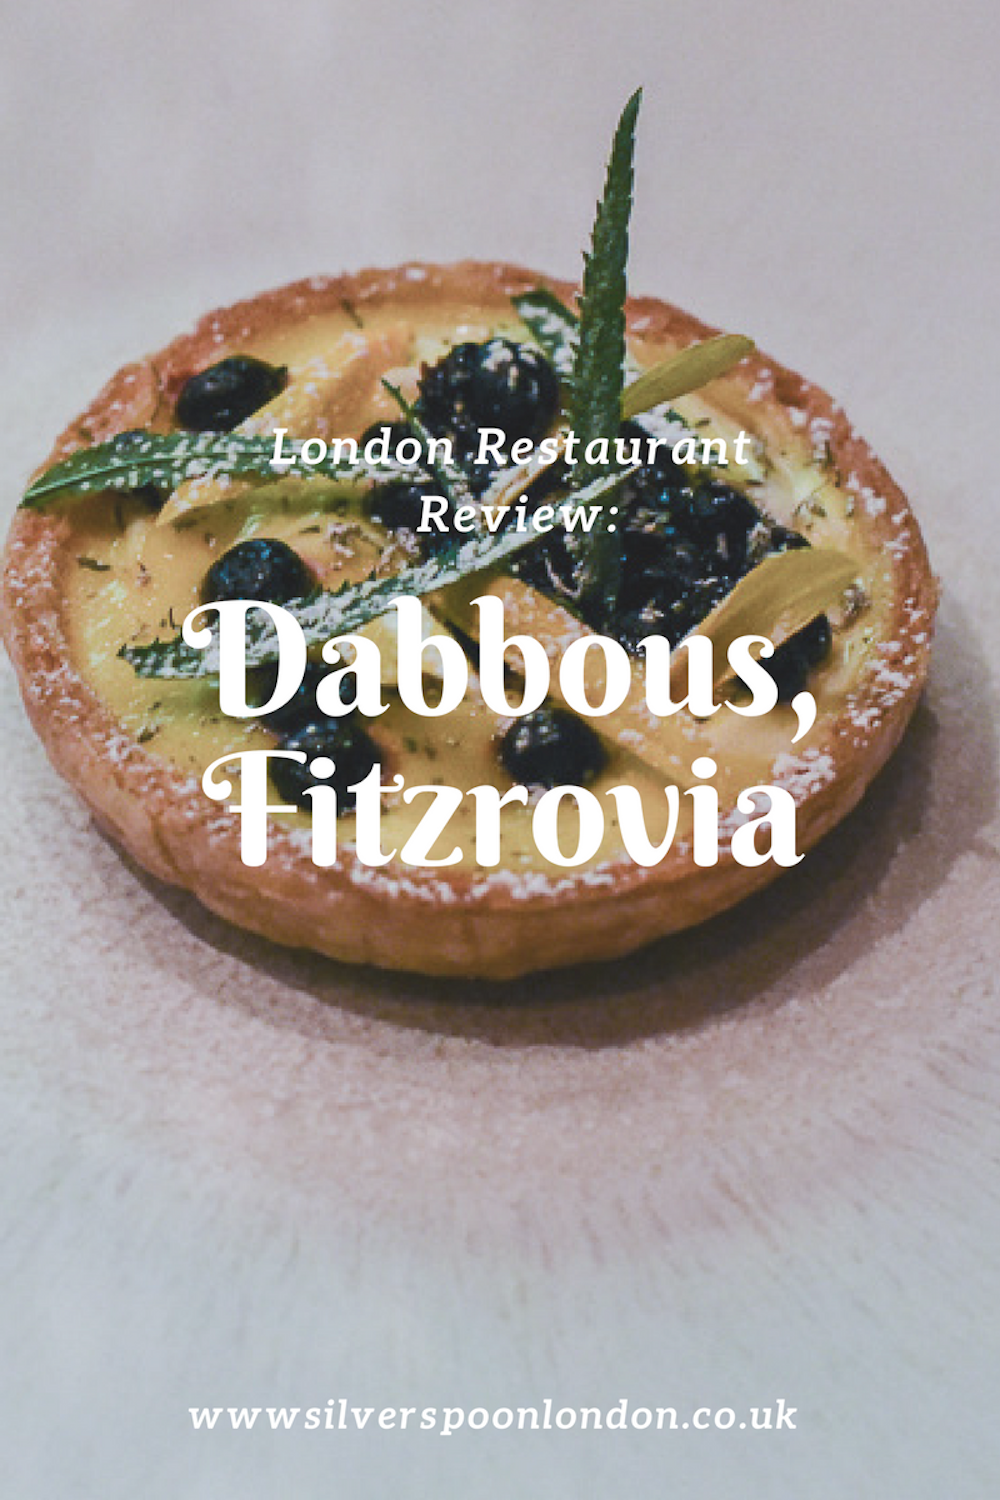 London Restaurant Review: Dabbous